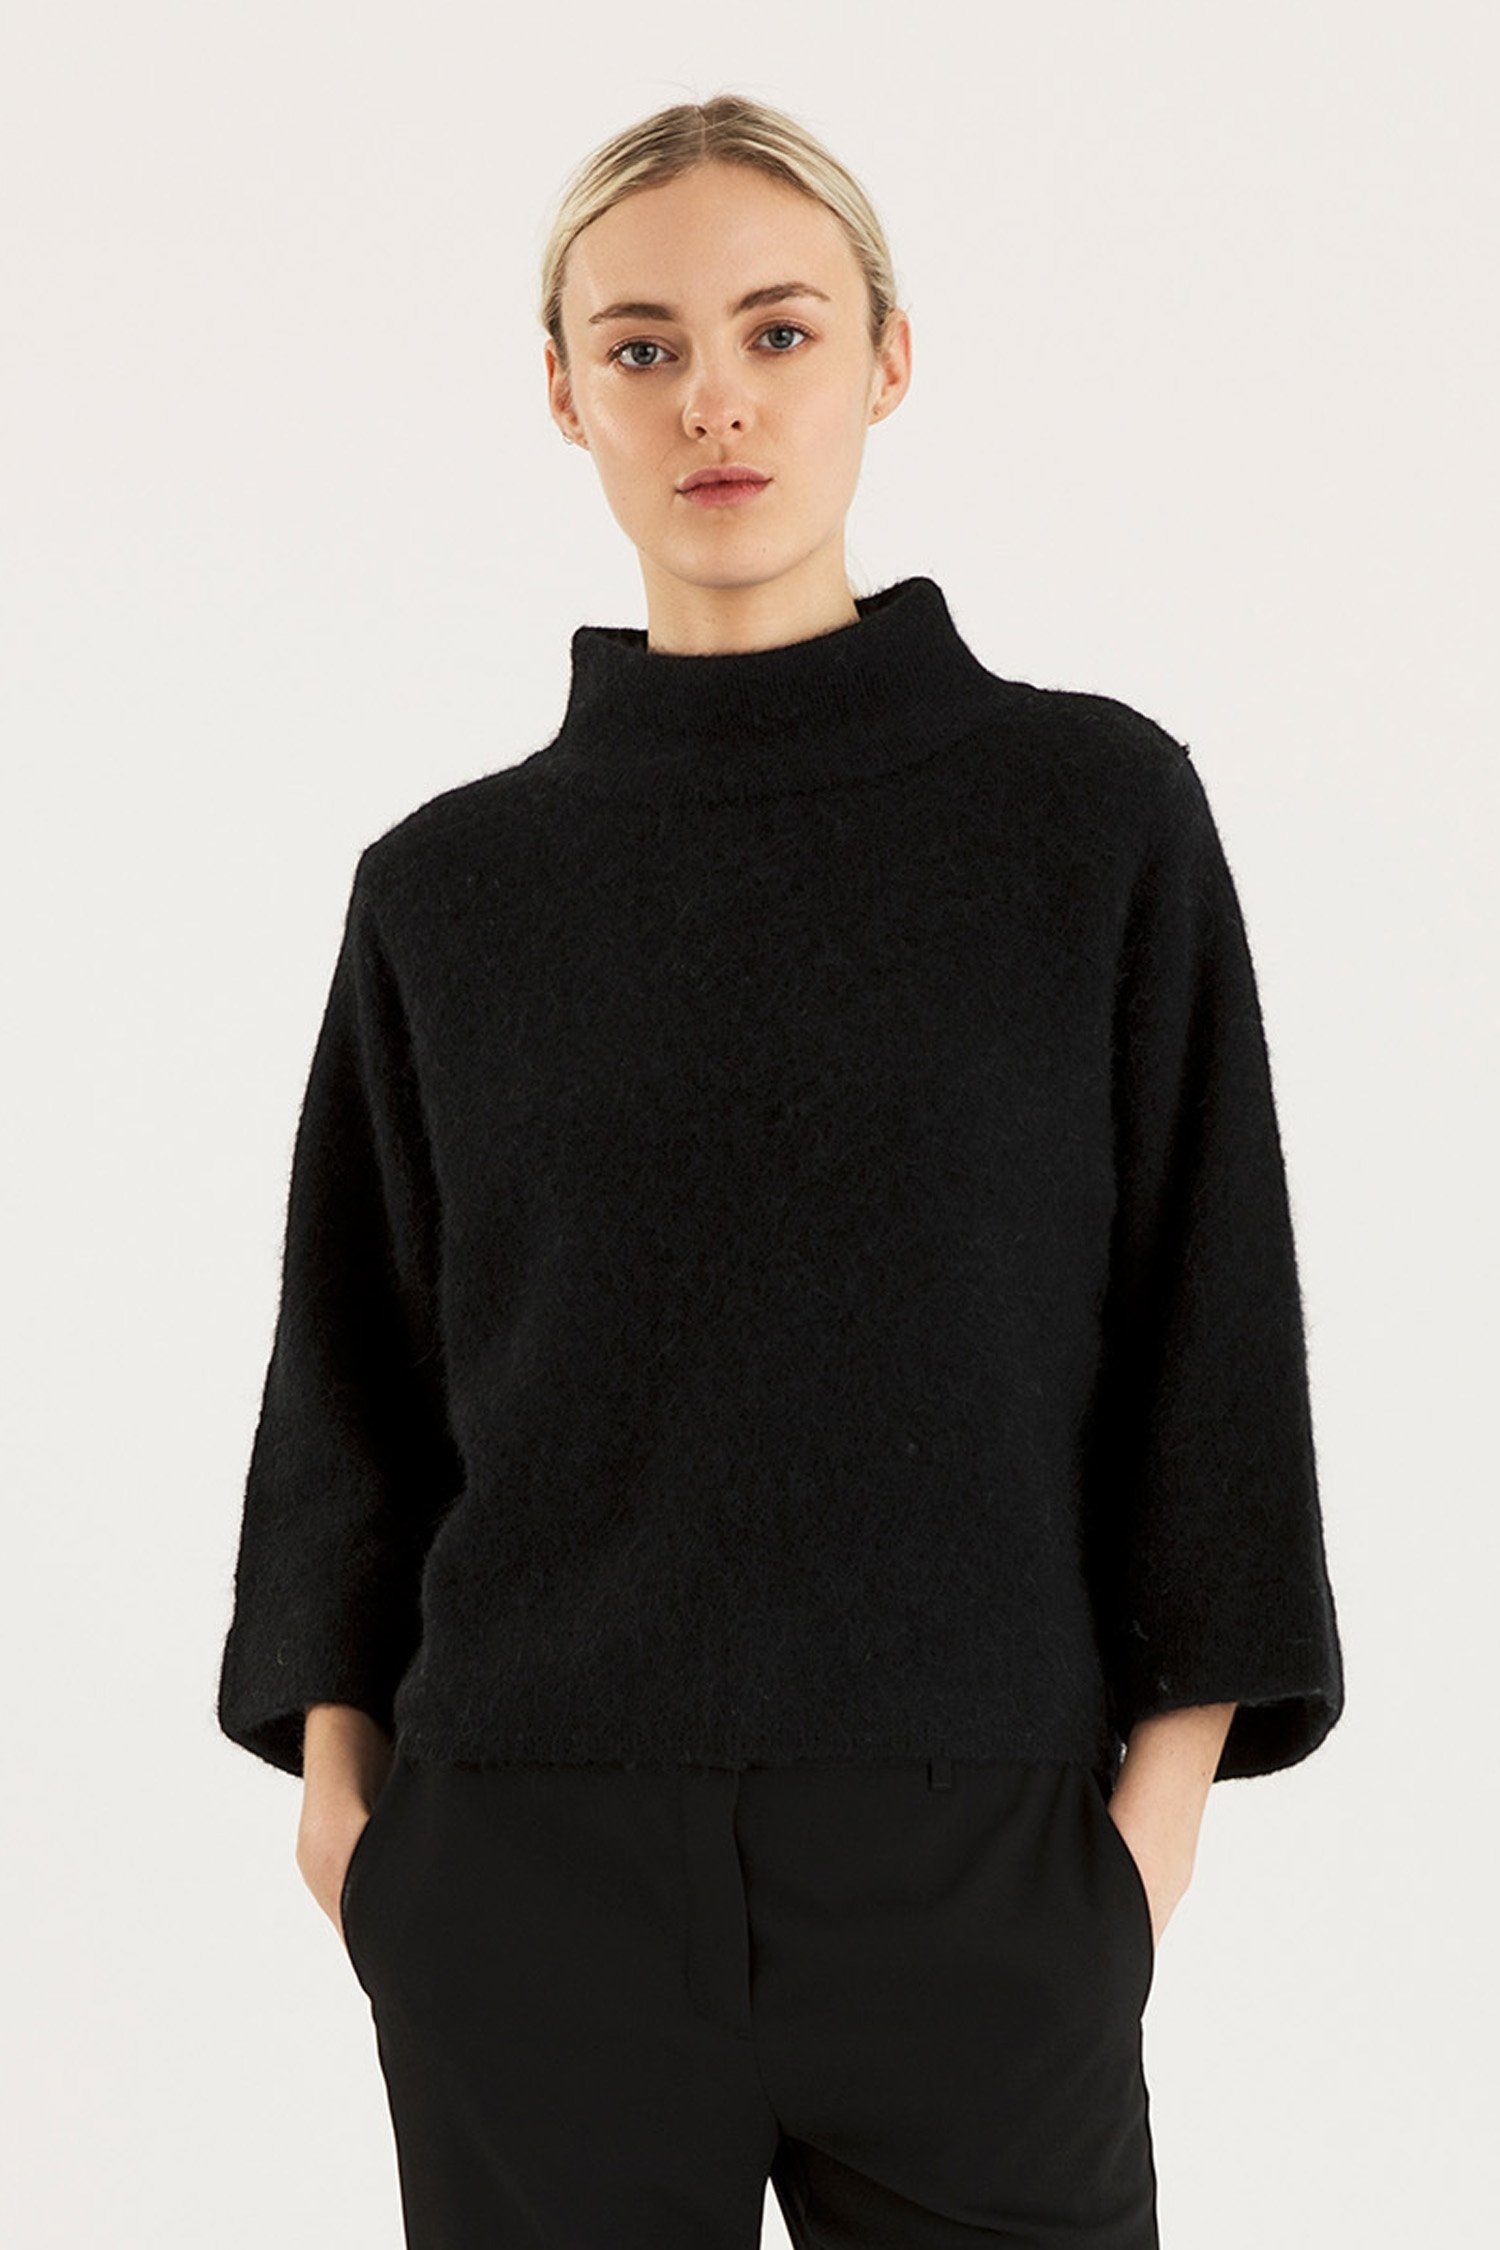 ELITA SWEATER - BLACK Sweater Stylein